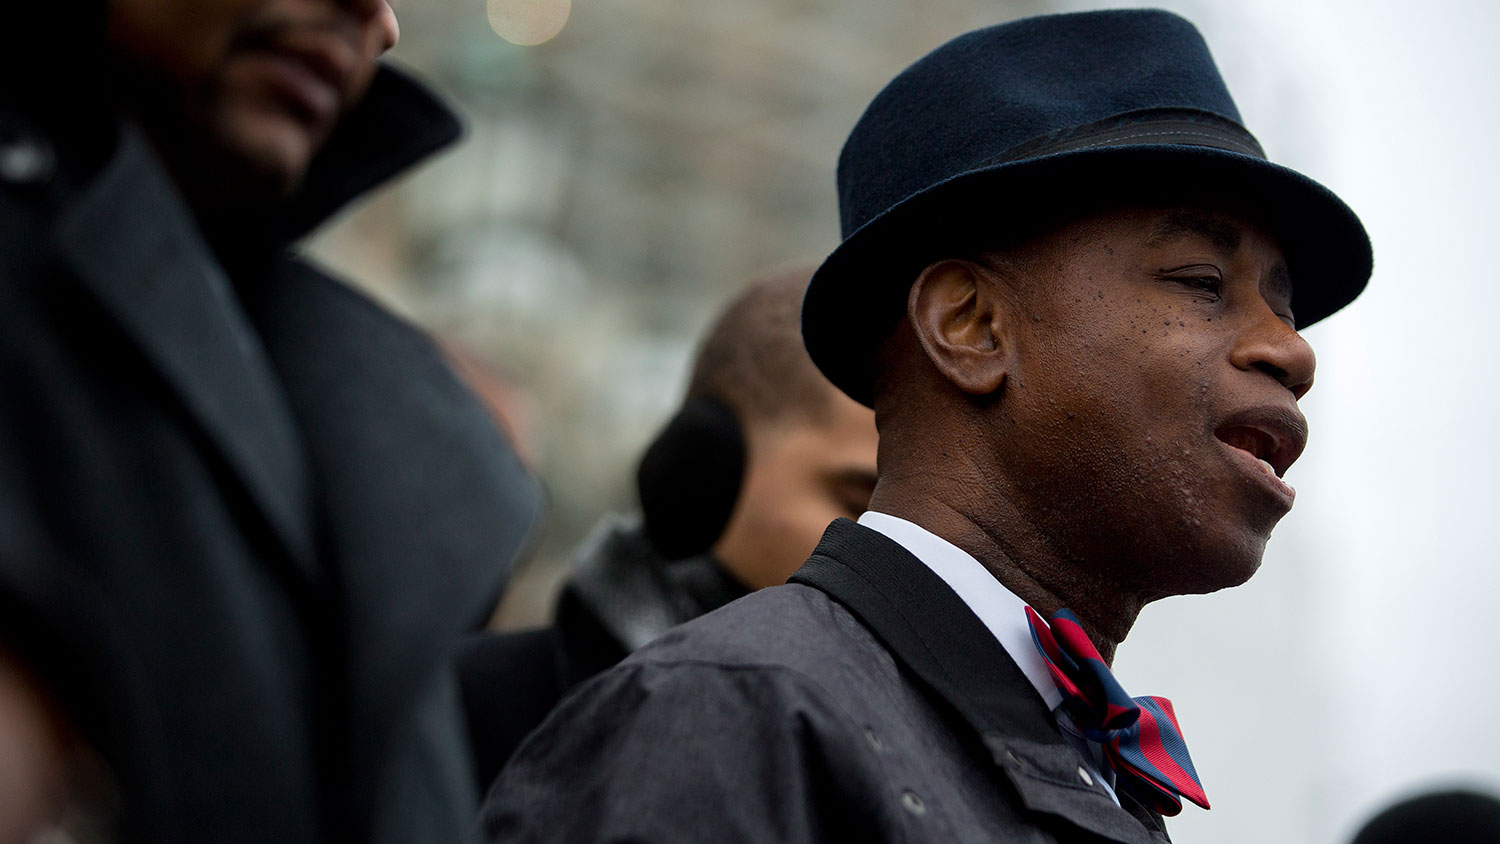 Senate Chaplain Dr. Barry Black leads a prayer during a protest with Congressional staff members on the U.S. Capitol steps in Washington on Dec. 11, 2014.